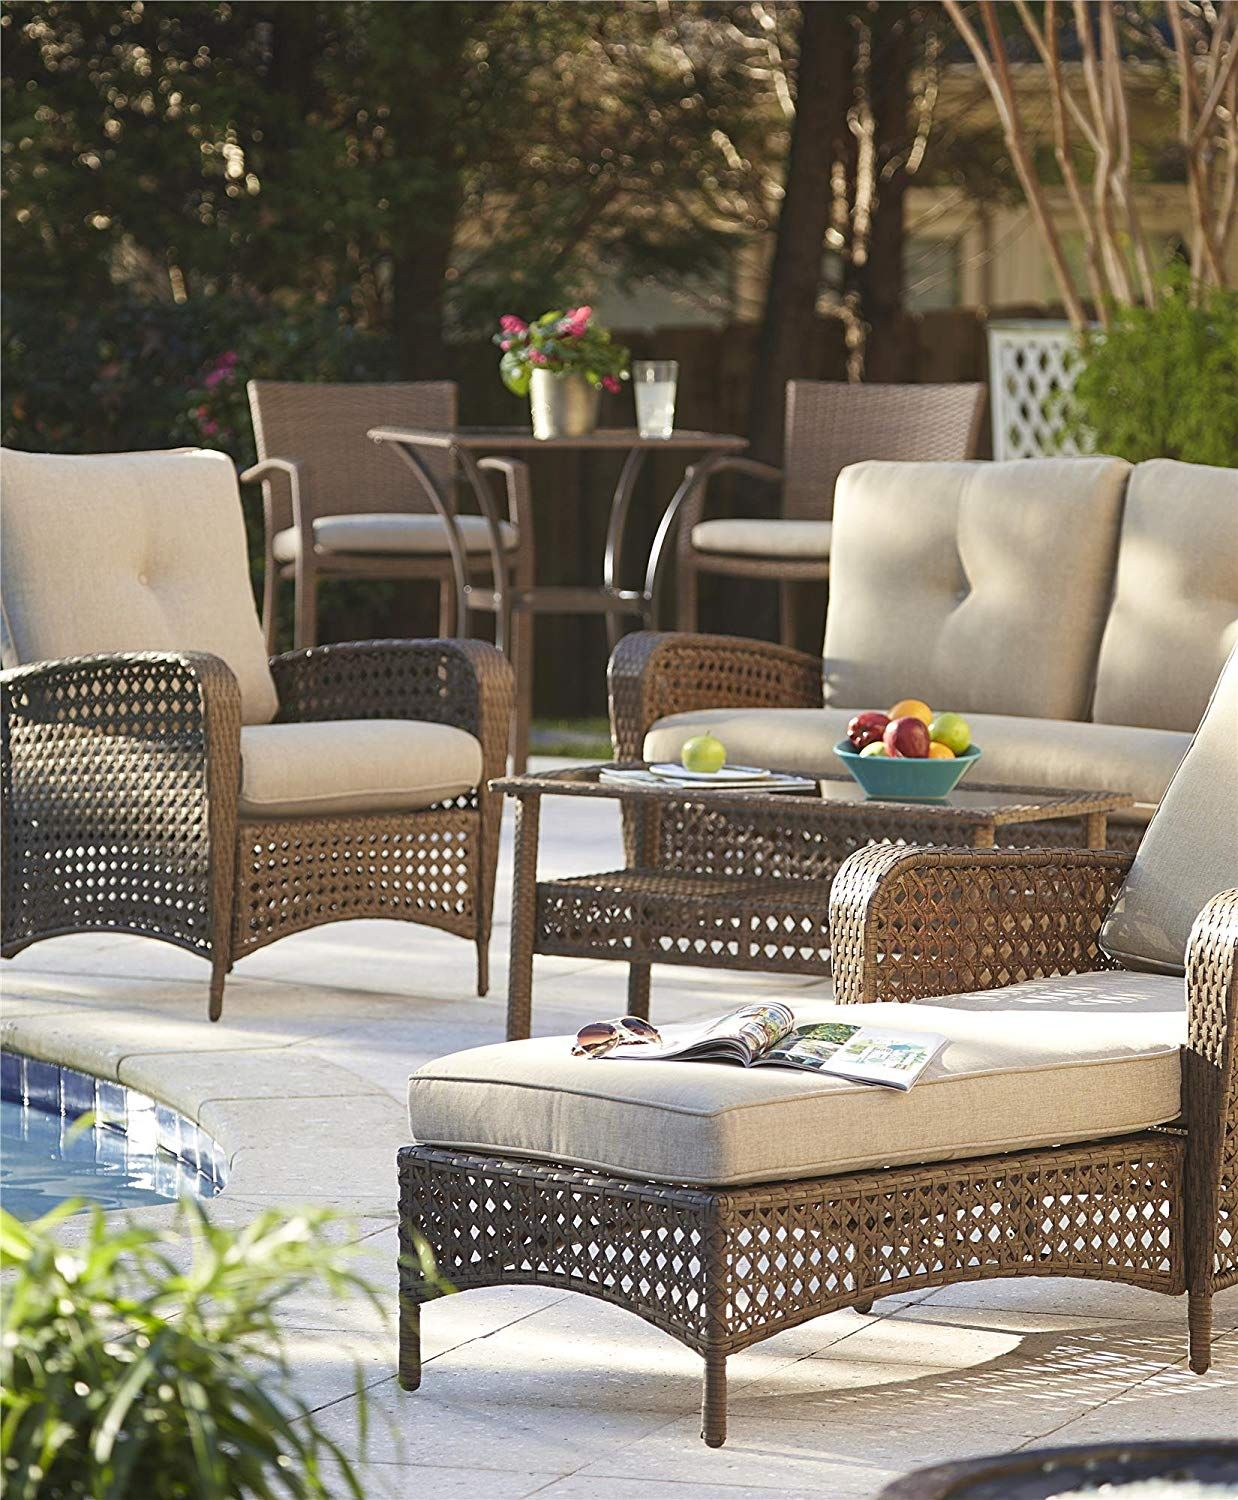 Beautiful patio / deck furniture get this look CLICK